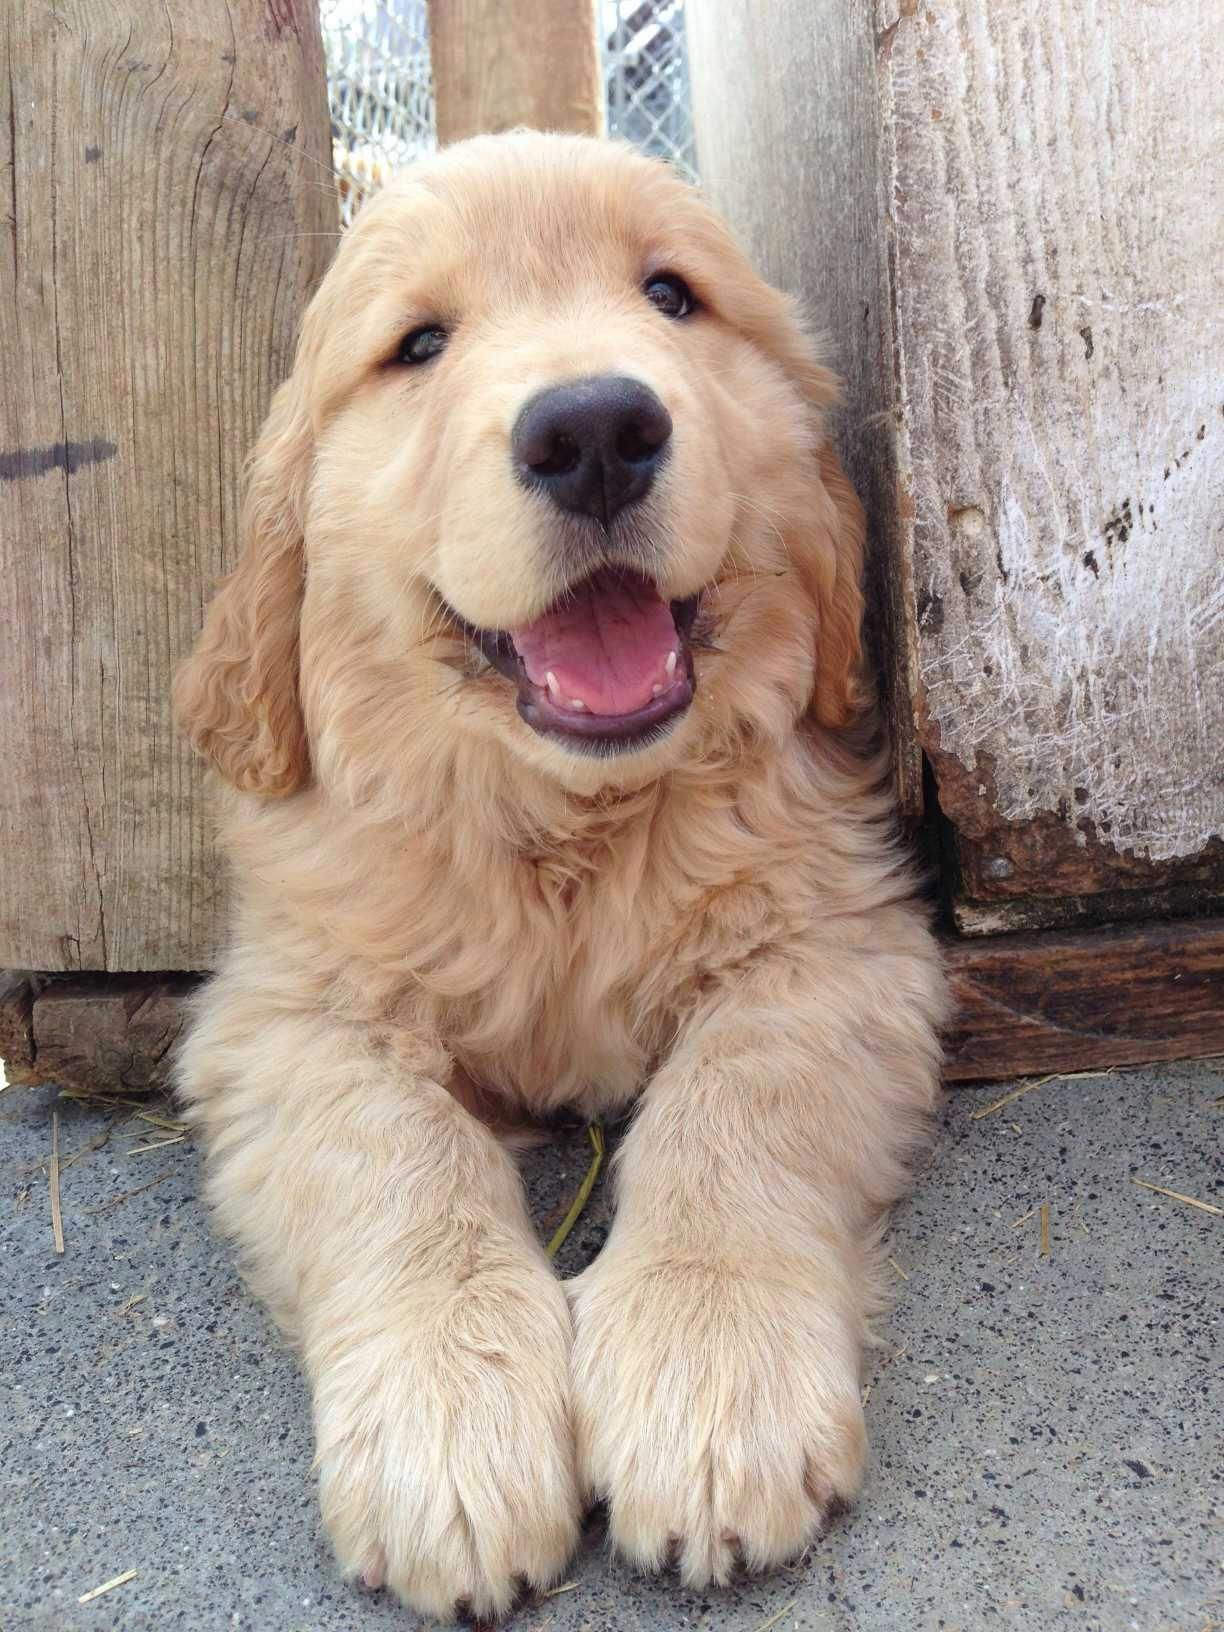 Find Out More On The Friendly Golden Retriever Dogs Temperament